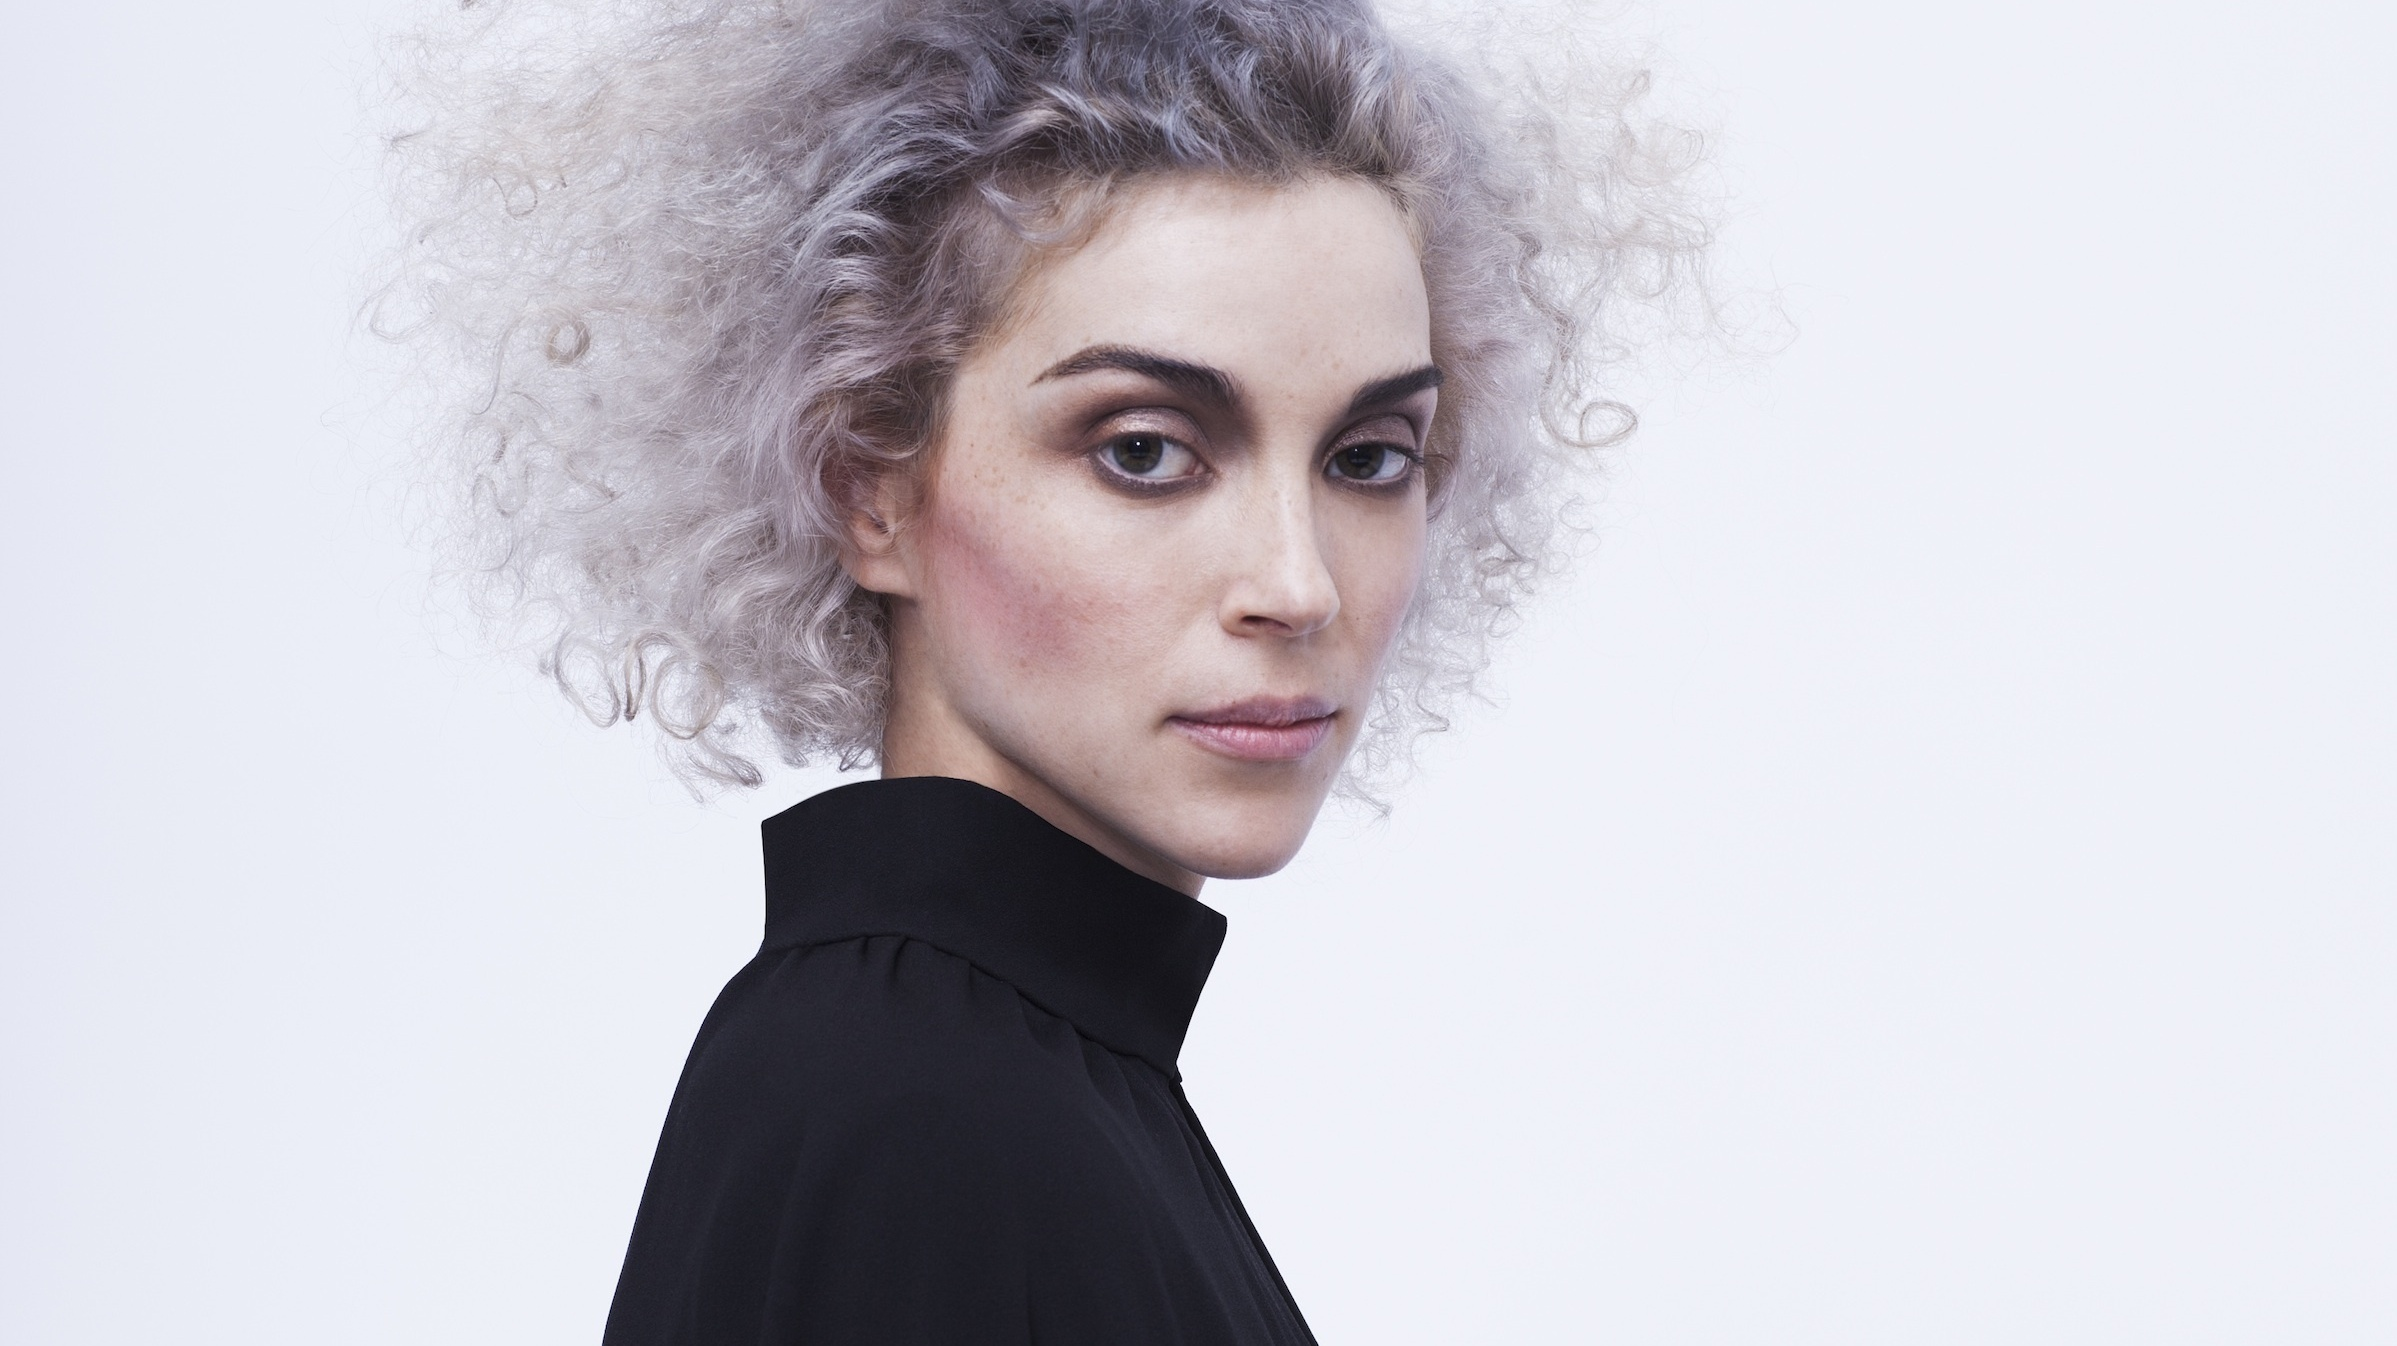 Ambien Dreams And Naked Desert Walks: St. Vincent On Her New Album